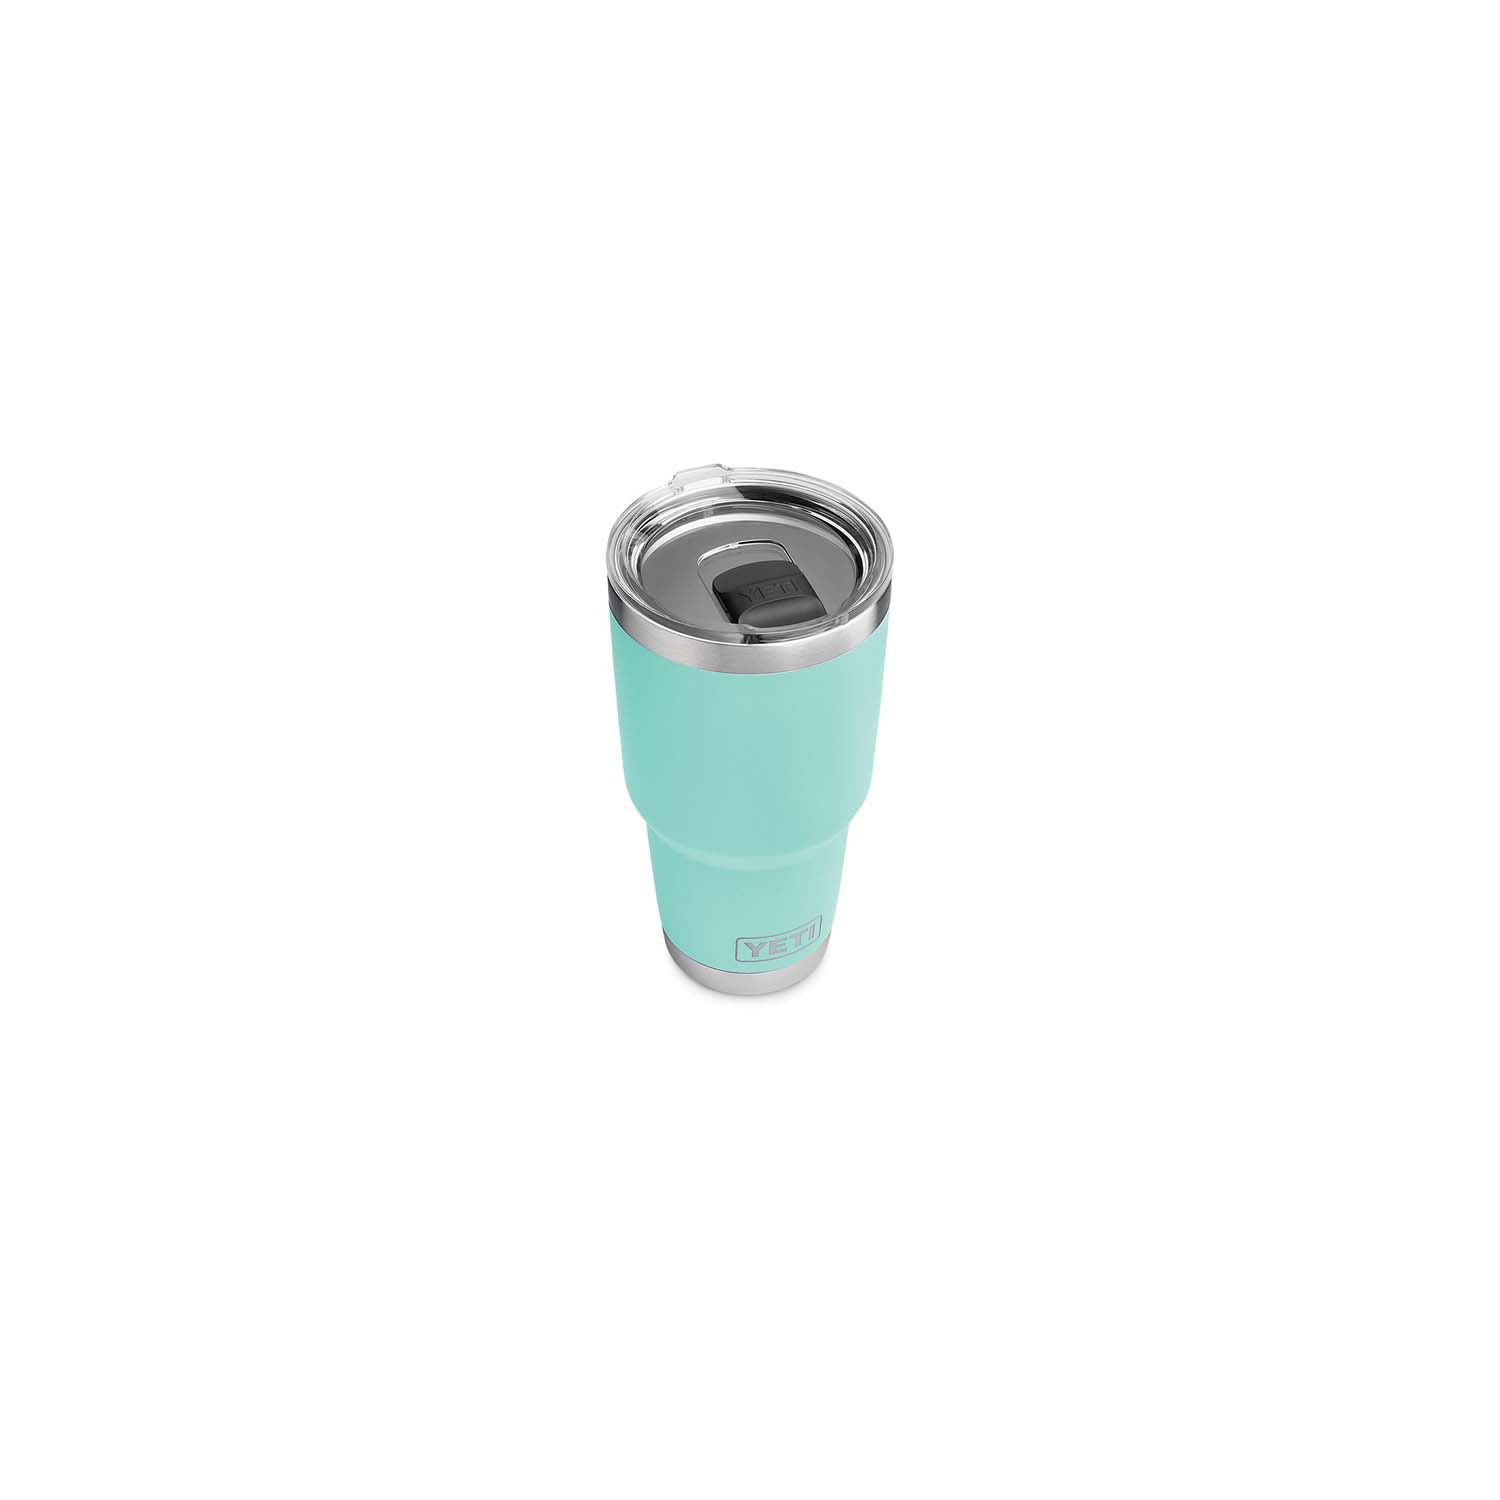 Picture of YETI Rambler 21070070017 Tumbler, 30 oz Capacity, Stainless Steel, Seafoam